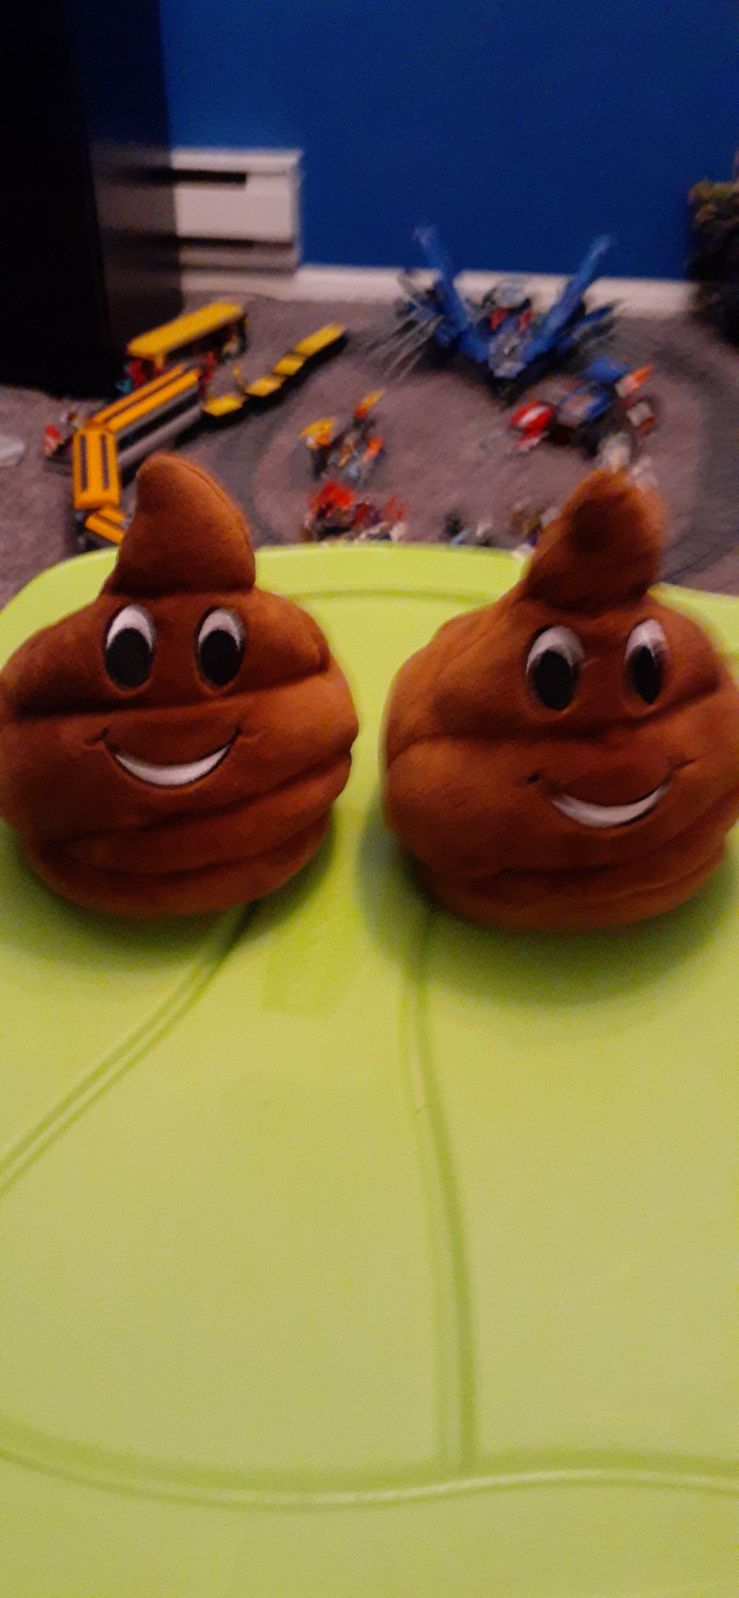 Kids size small poop slippers